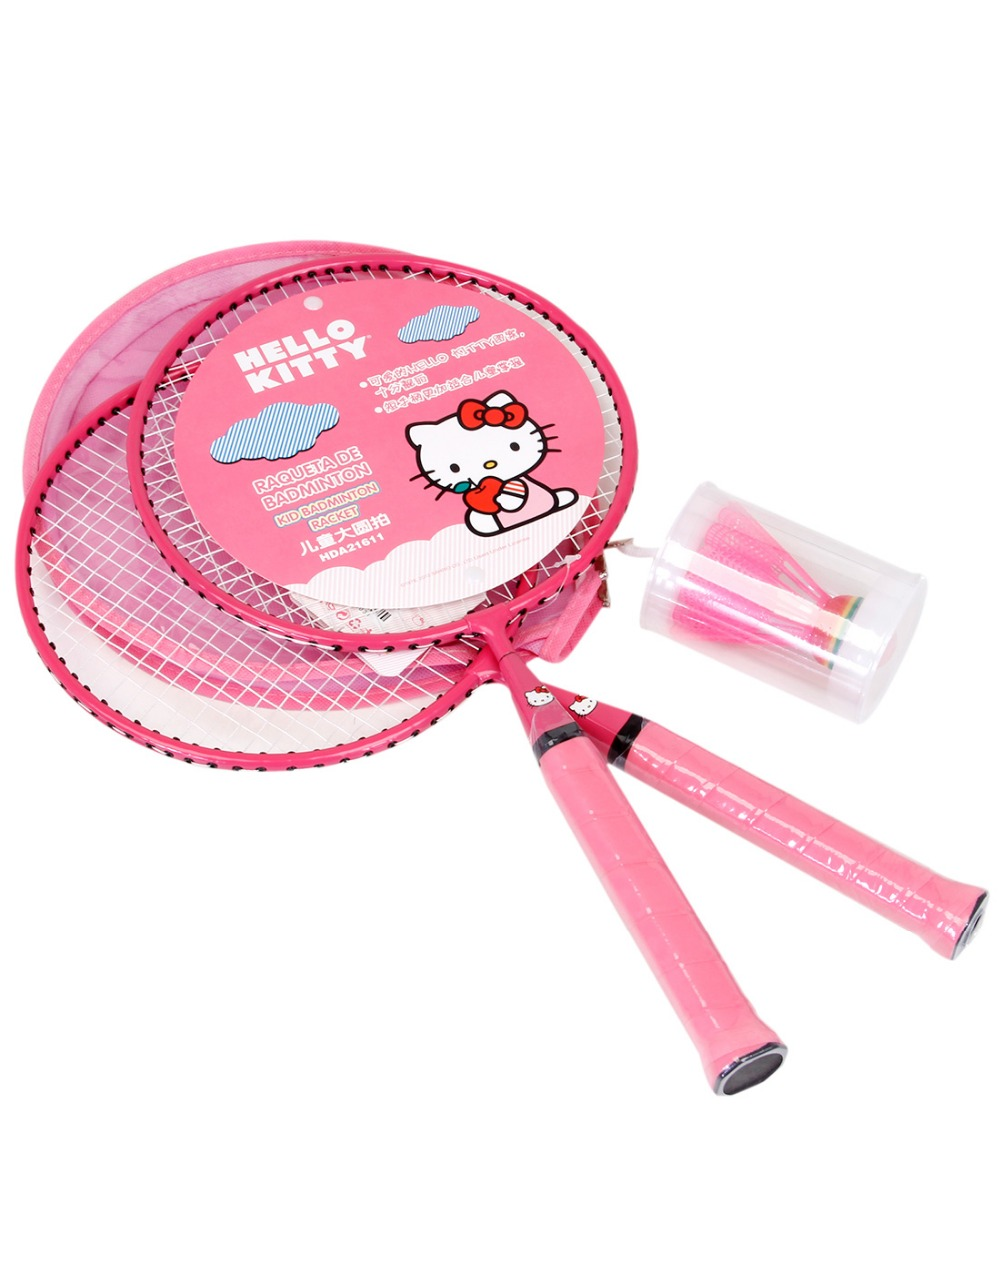 HELLO KITTY Badminton Rackets Sports cheap Kids Cartoon racket Set Training children 44cm fit 3-12 years old Badminton Rackets (2)